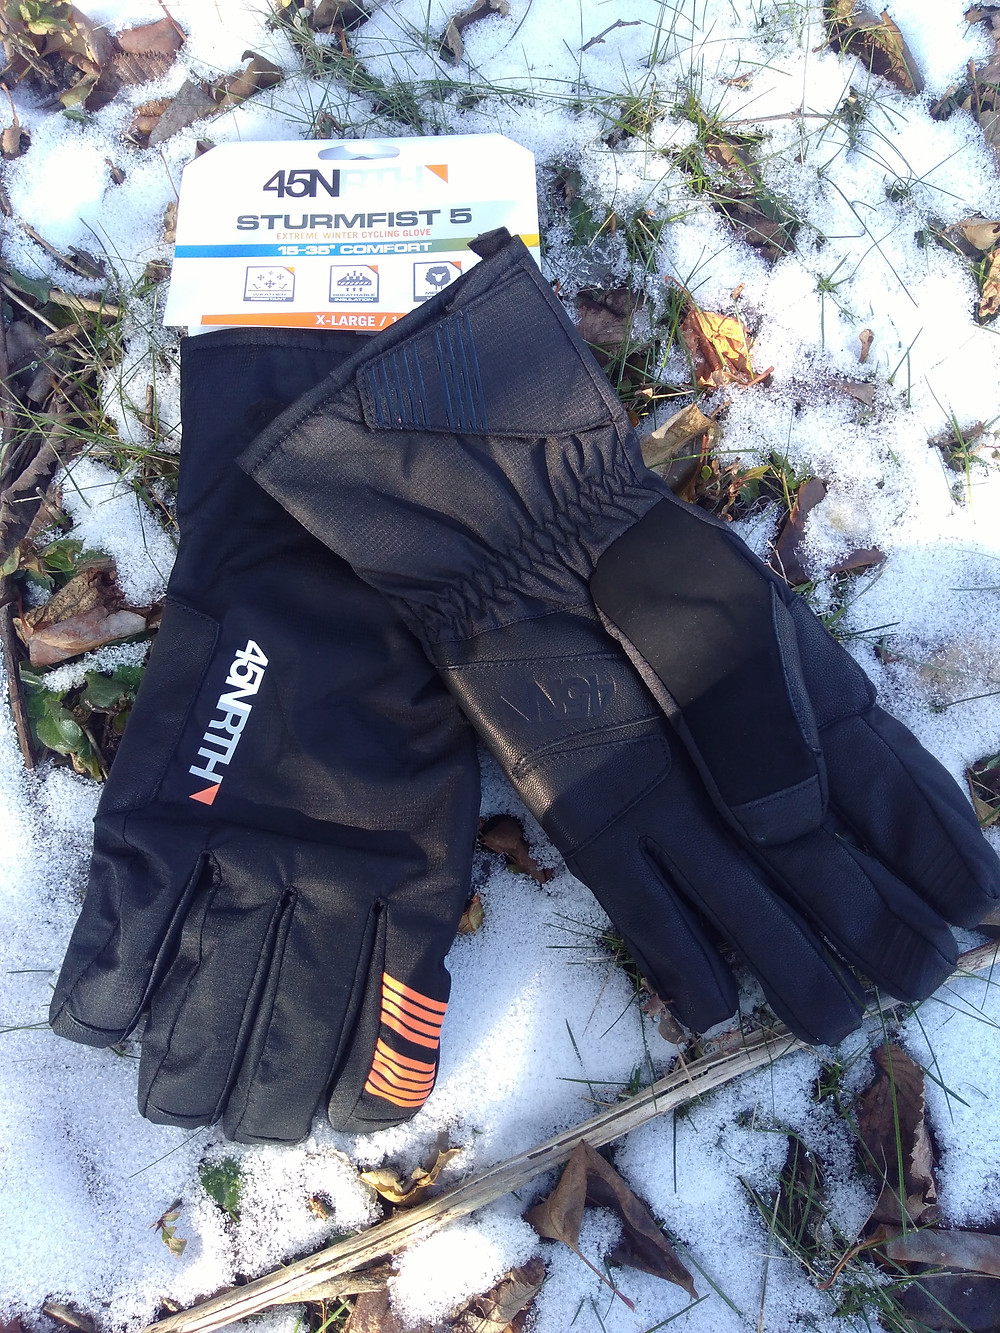 Sturmfist 5s. Excellent winter gloves by 45NRTH, available at Bluedog Cycles.